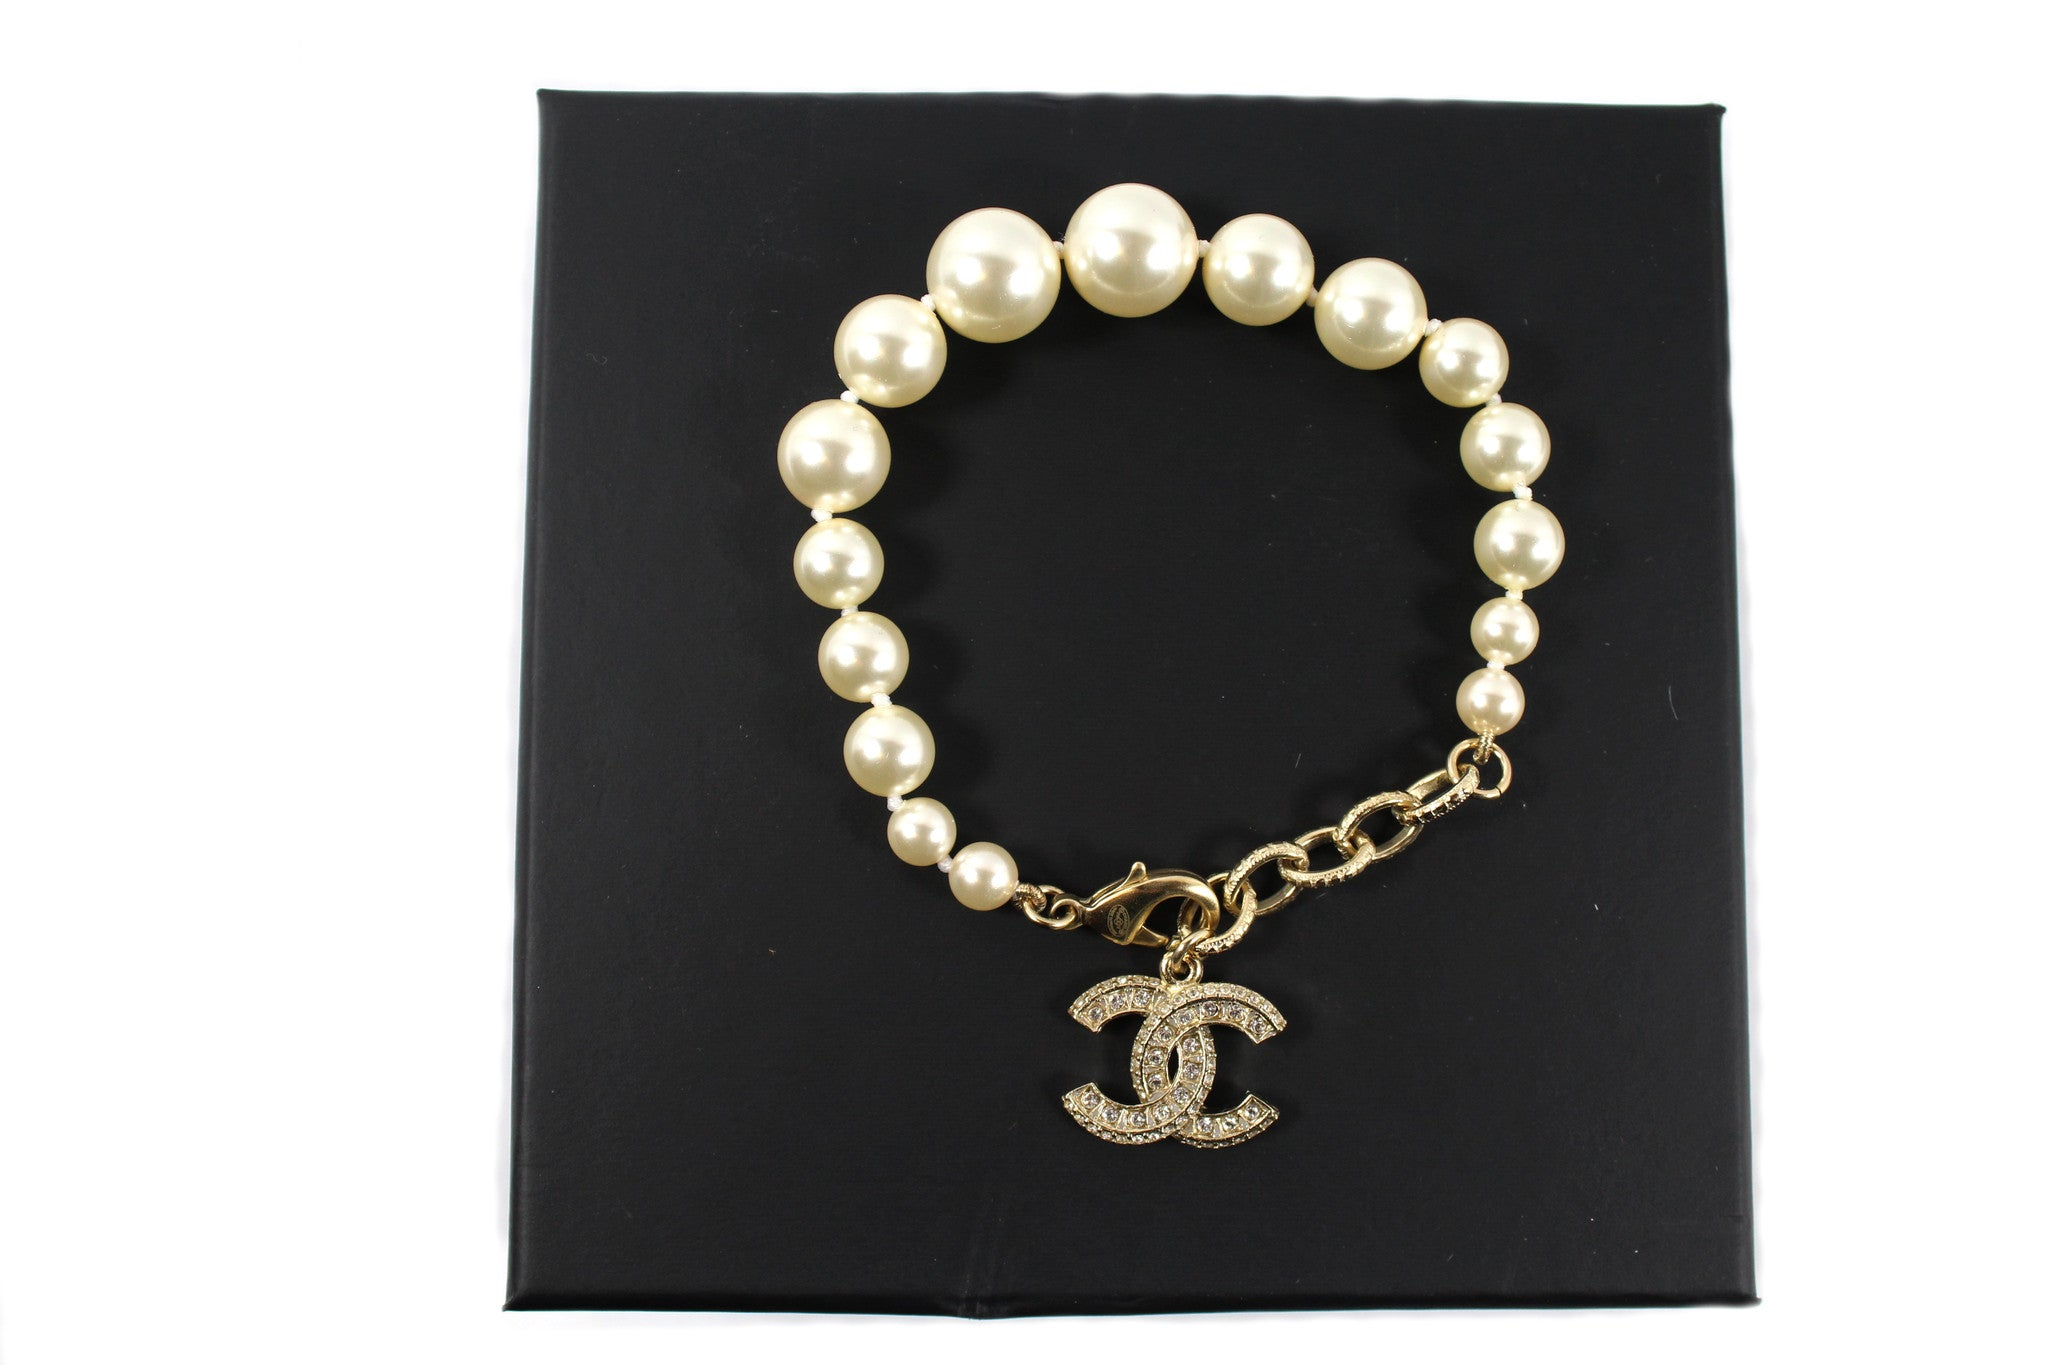 Chanel Pearl and Swarovski Crystals Bracelet - Encore Consignment - 4